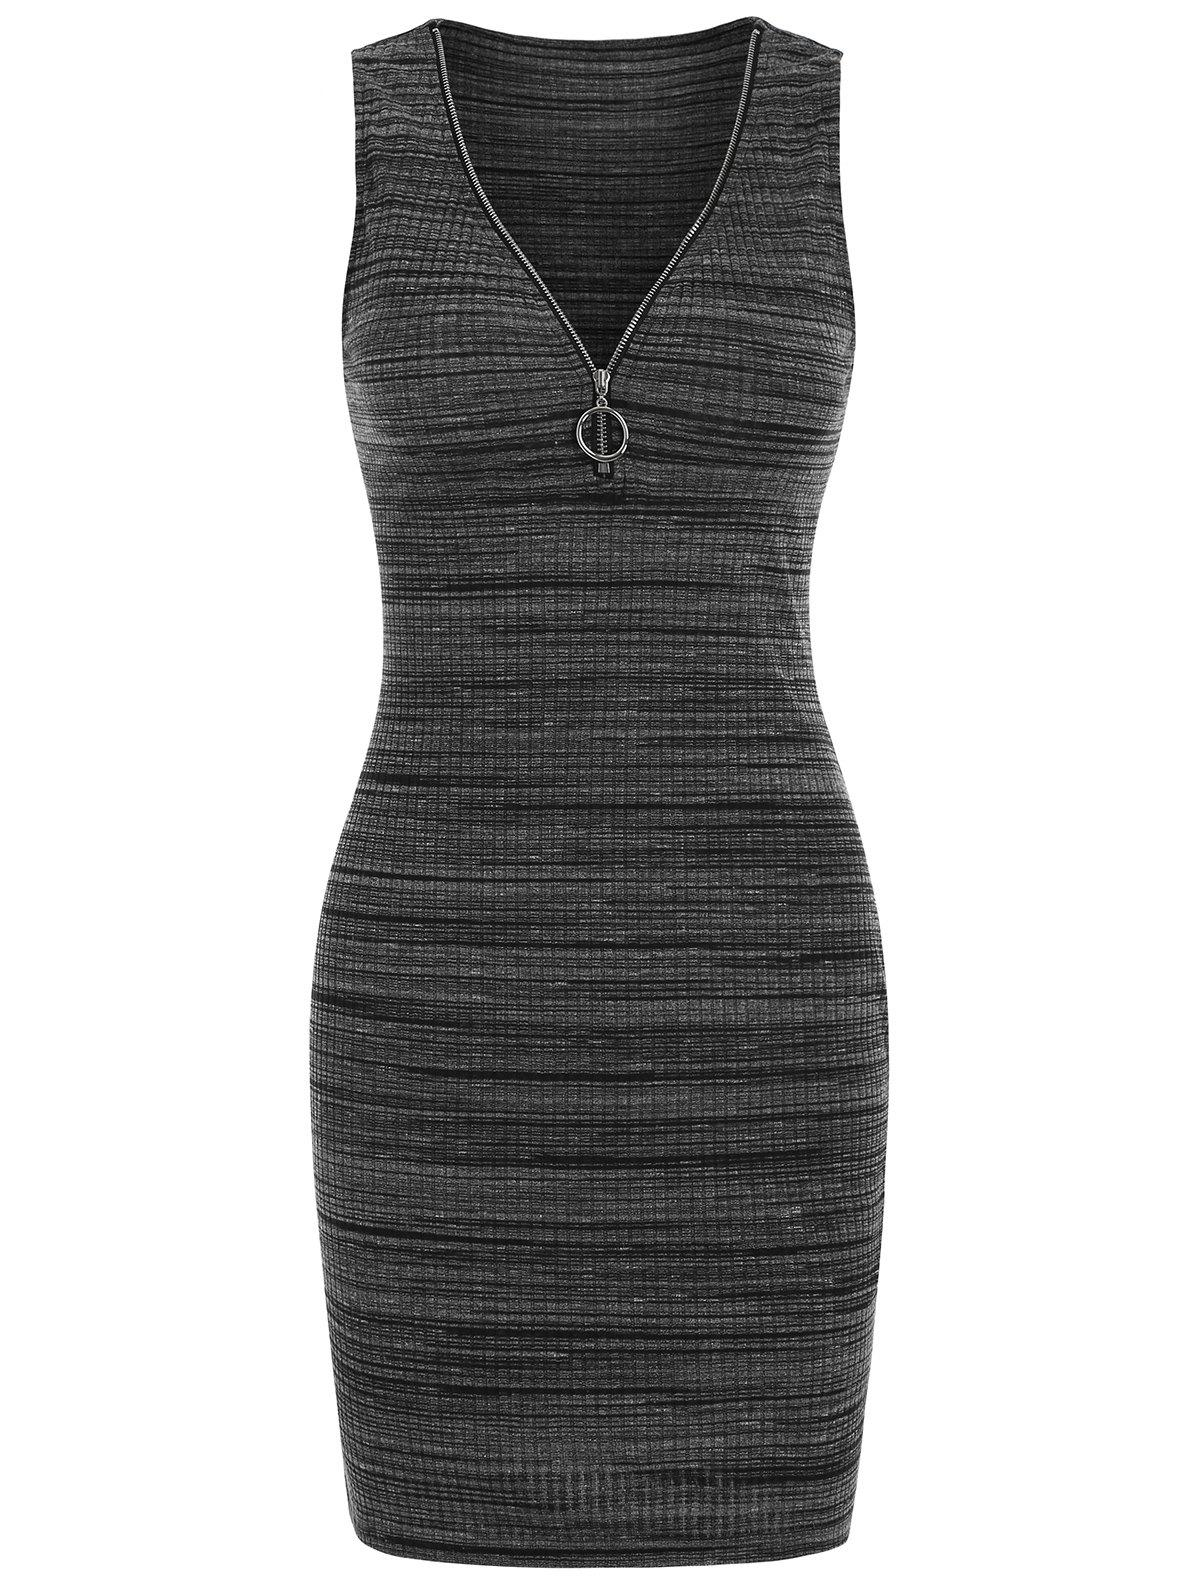 O-ring Pull V Neck Knitted Sleeveless Bodycon Dress - CARBON GRAY 3XL